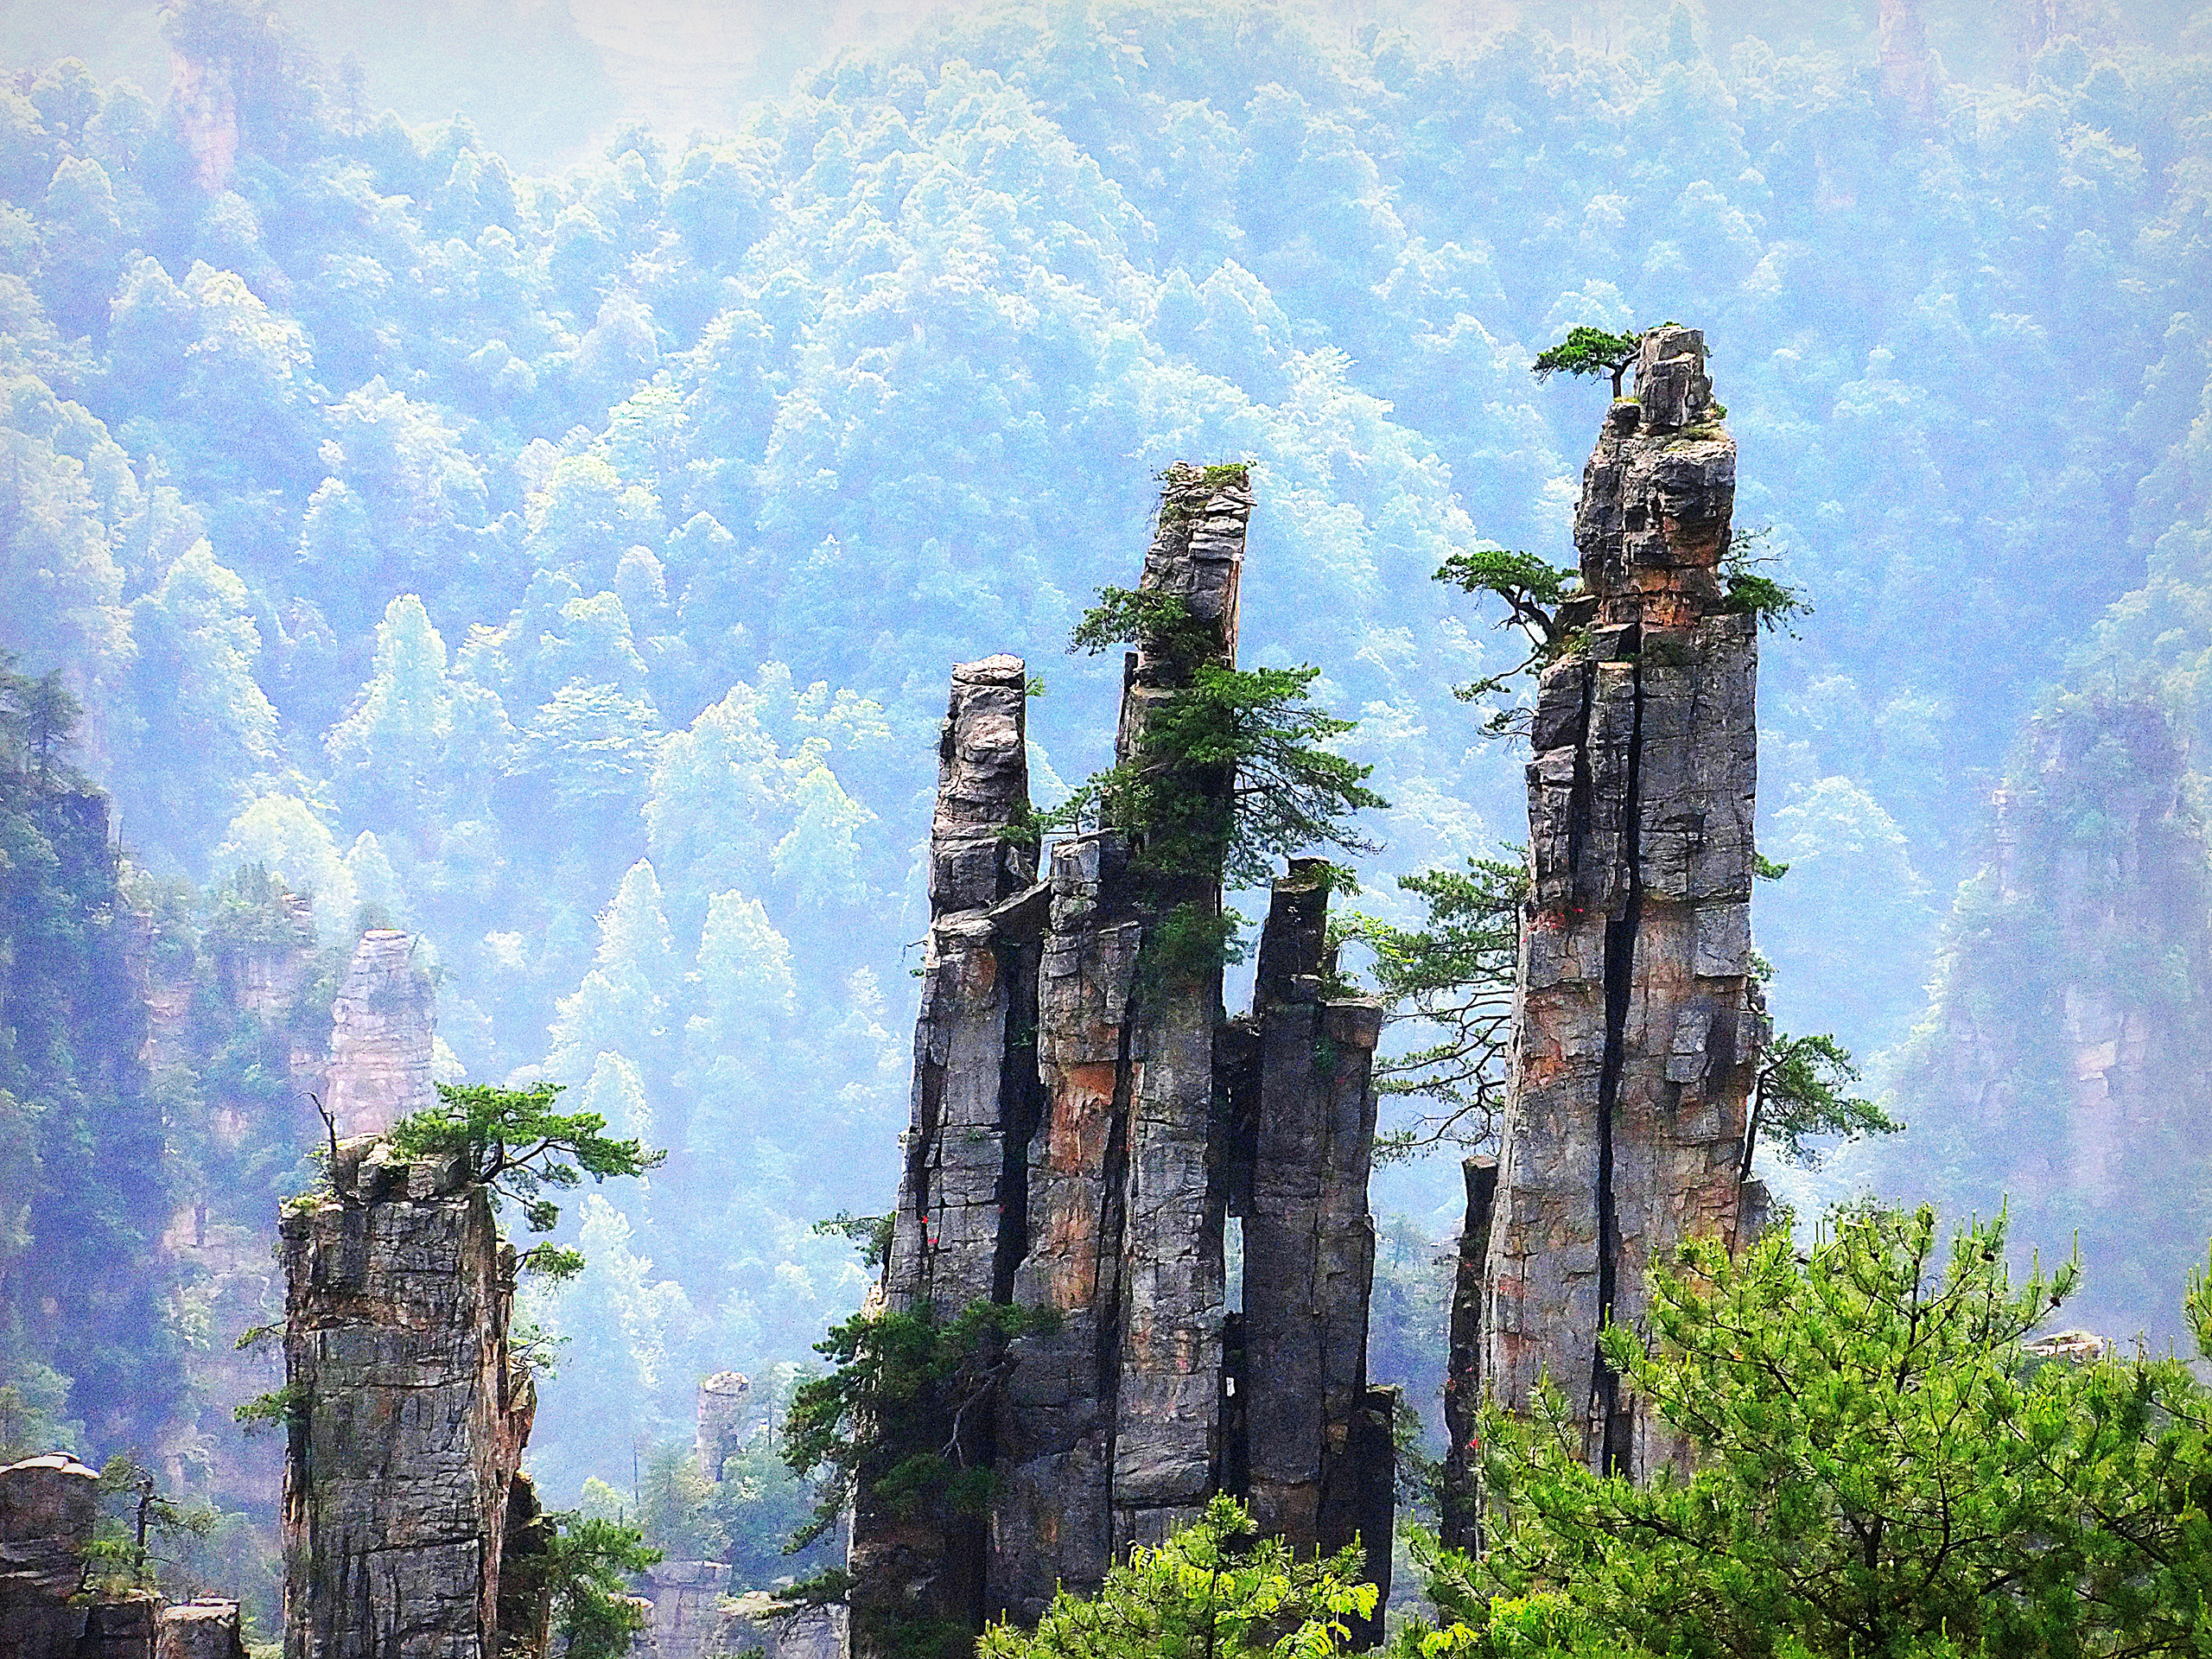 Zhangjiajie National Park Avatar S Hallelujah Mountains